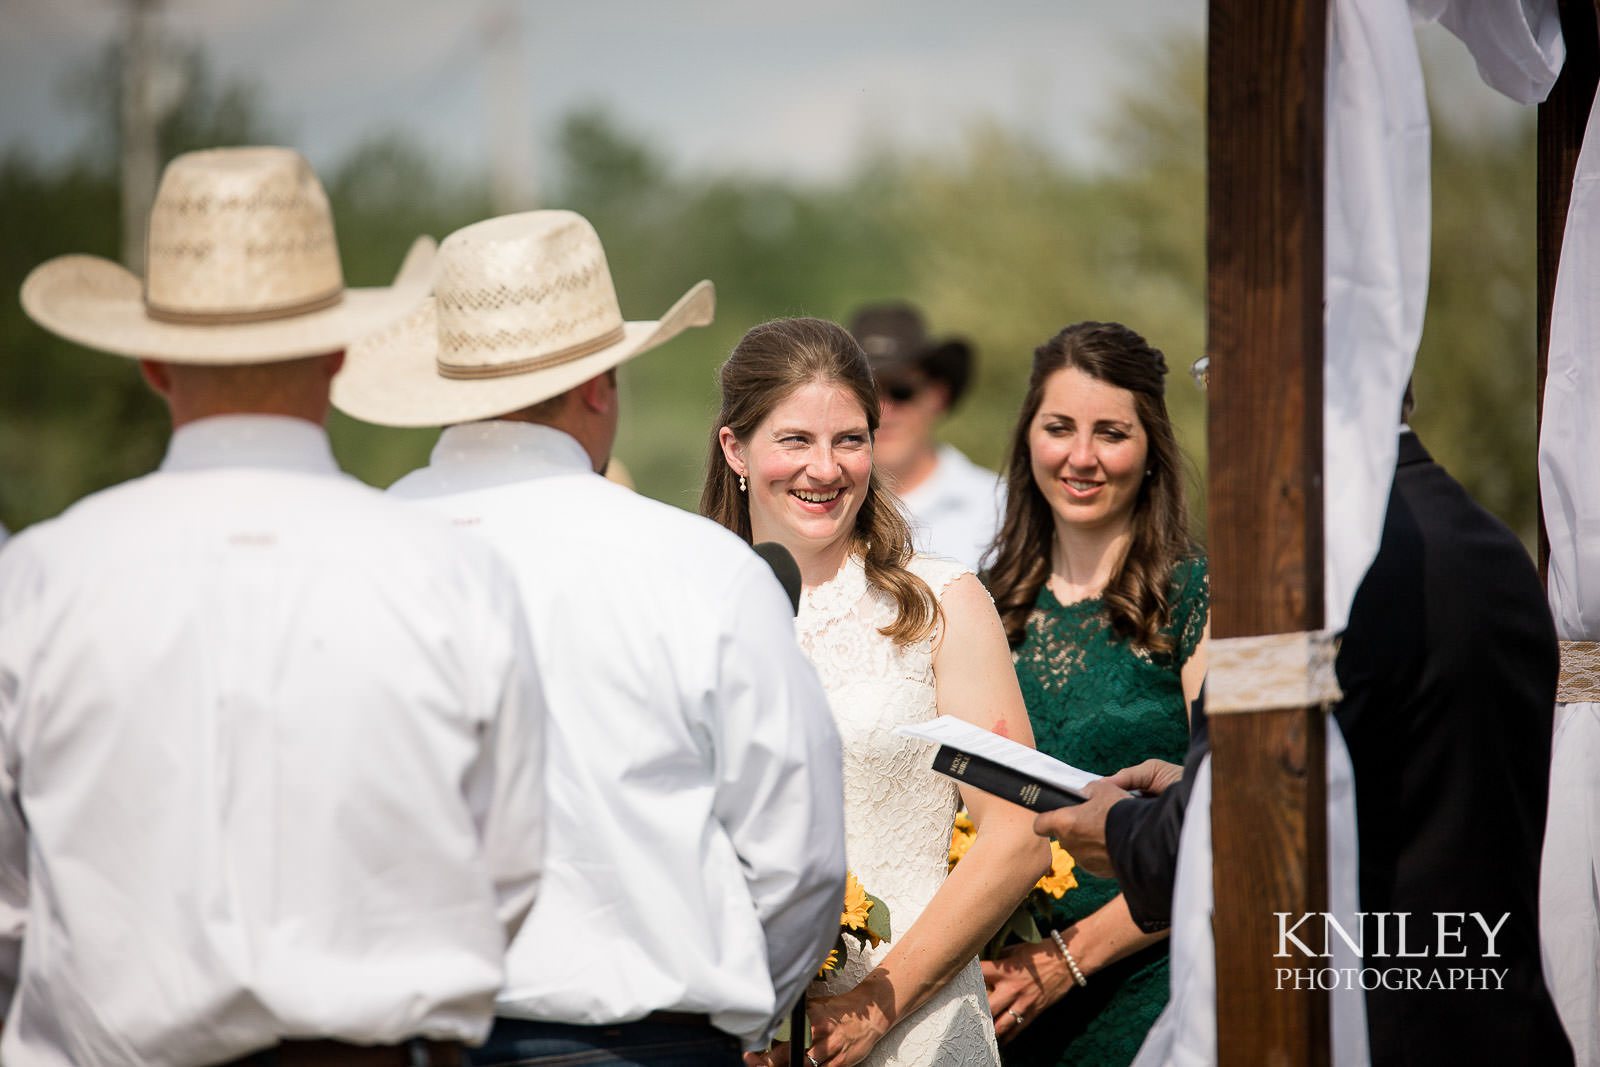 30-Western-New-York-farm-wedding-Kniley-Photography.jpg